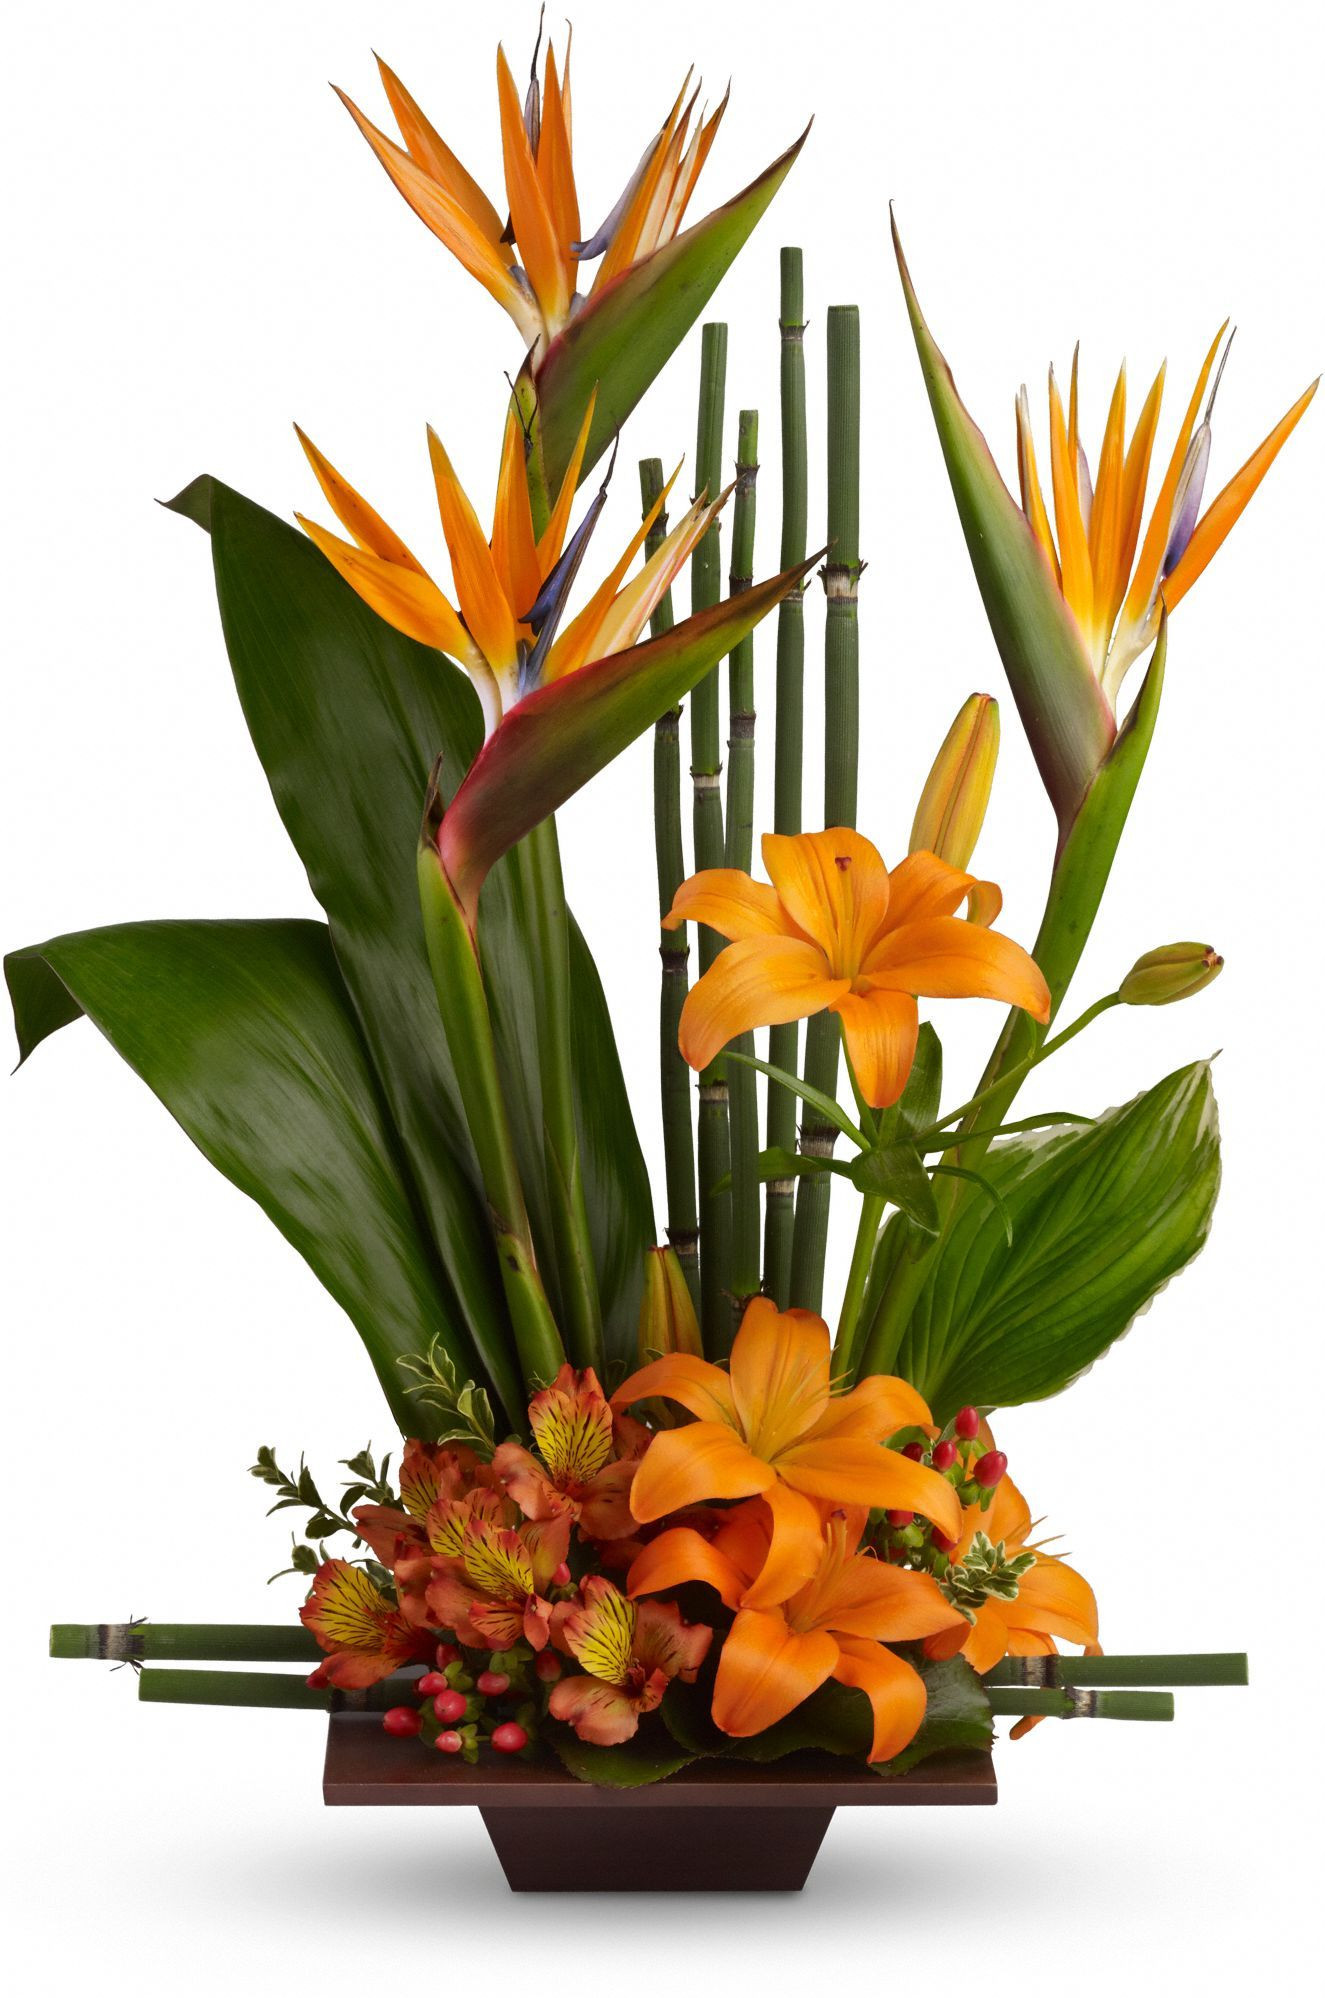 Teleflora s Exotic Grace Save on this bouquet and many others with coupon code TFMDAYOK1B2 fer expires 05 14 2012